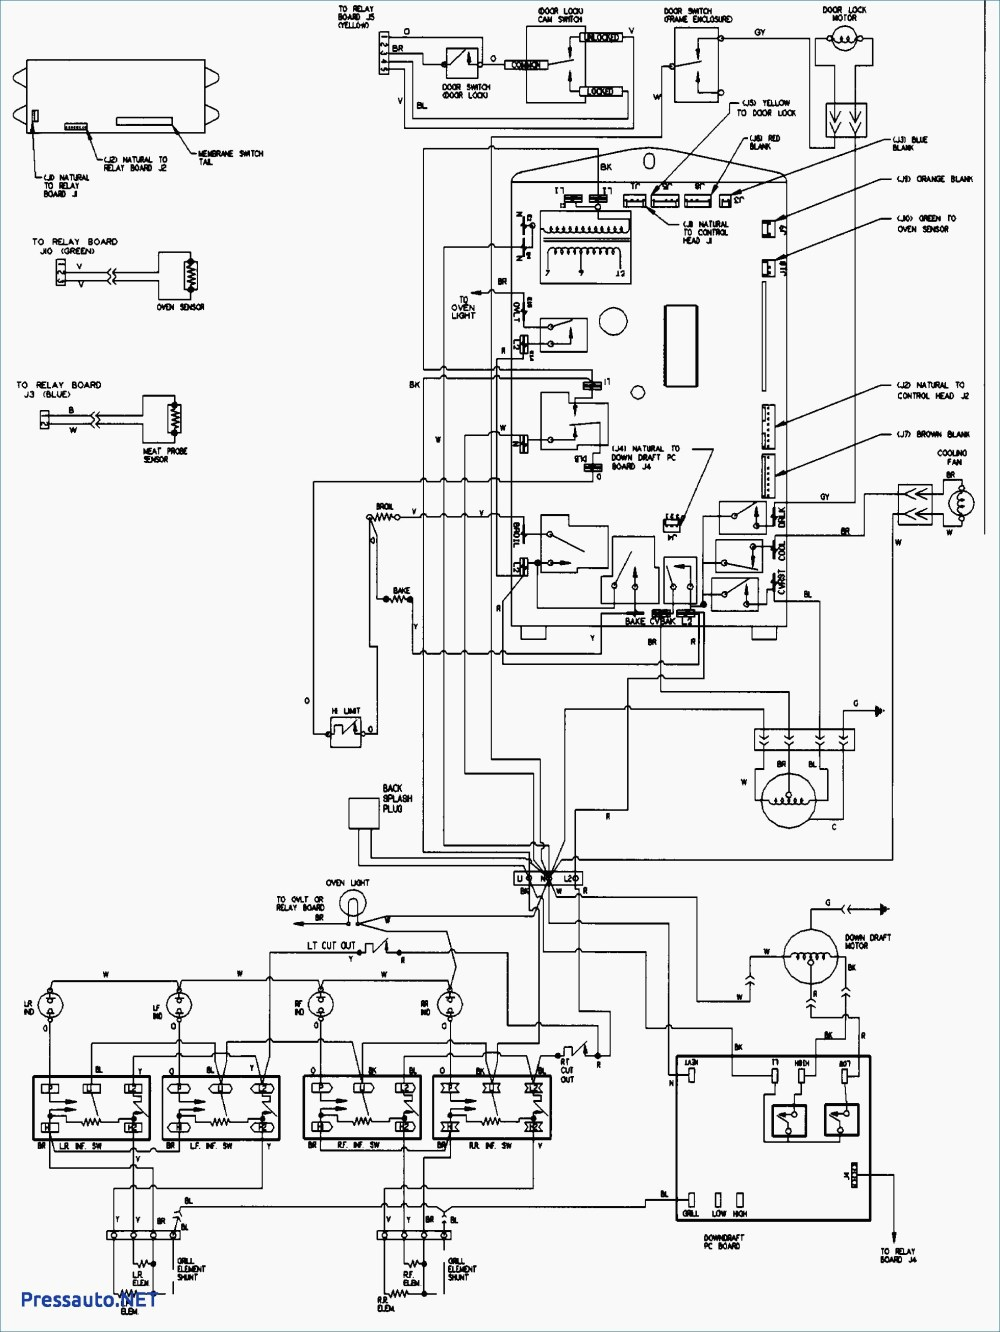 medium resolution of gas furnace wiring diagram gas furnace wiring diagrams explainedgas furnace wiring ssu trusted wiring diagram gas